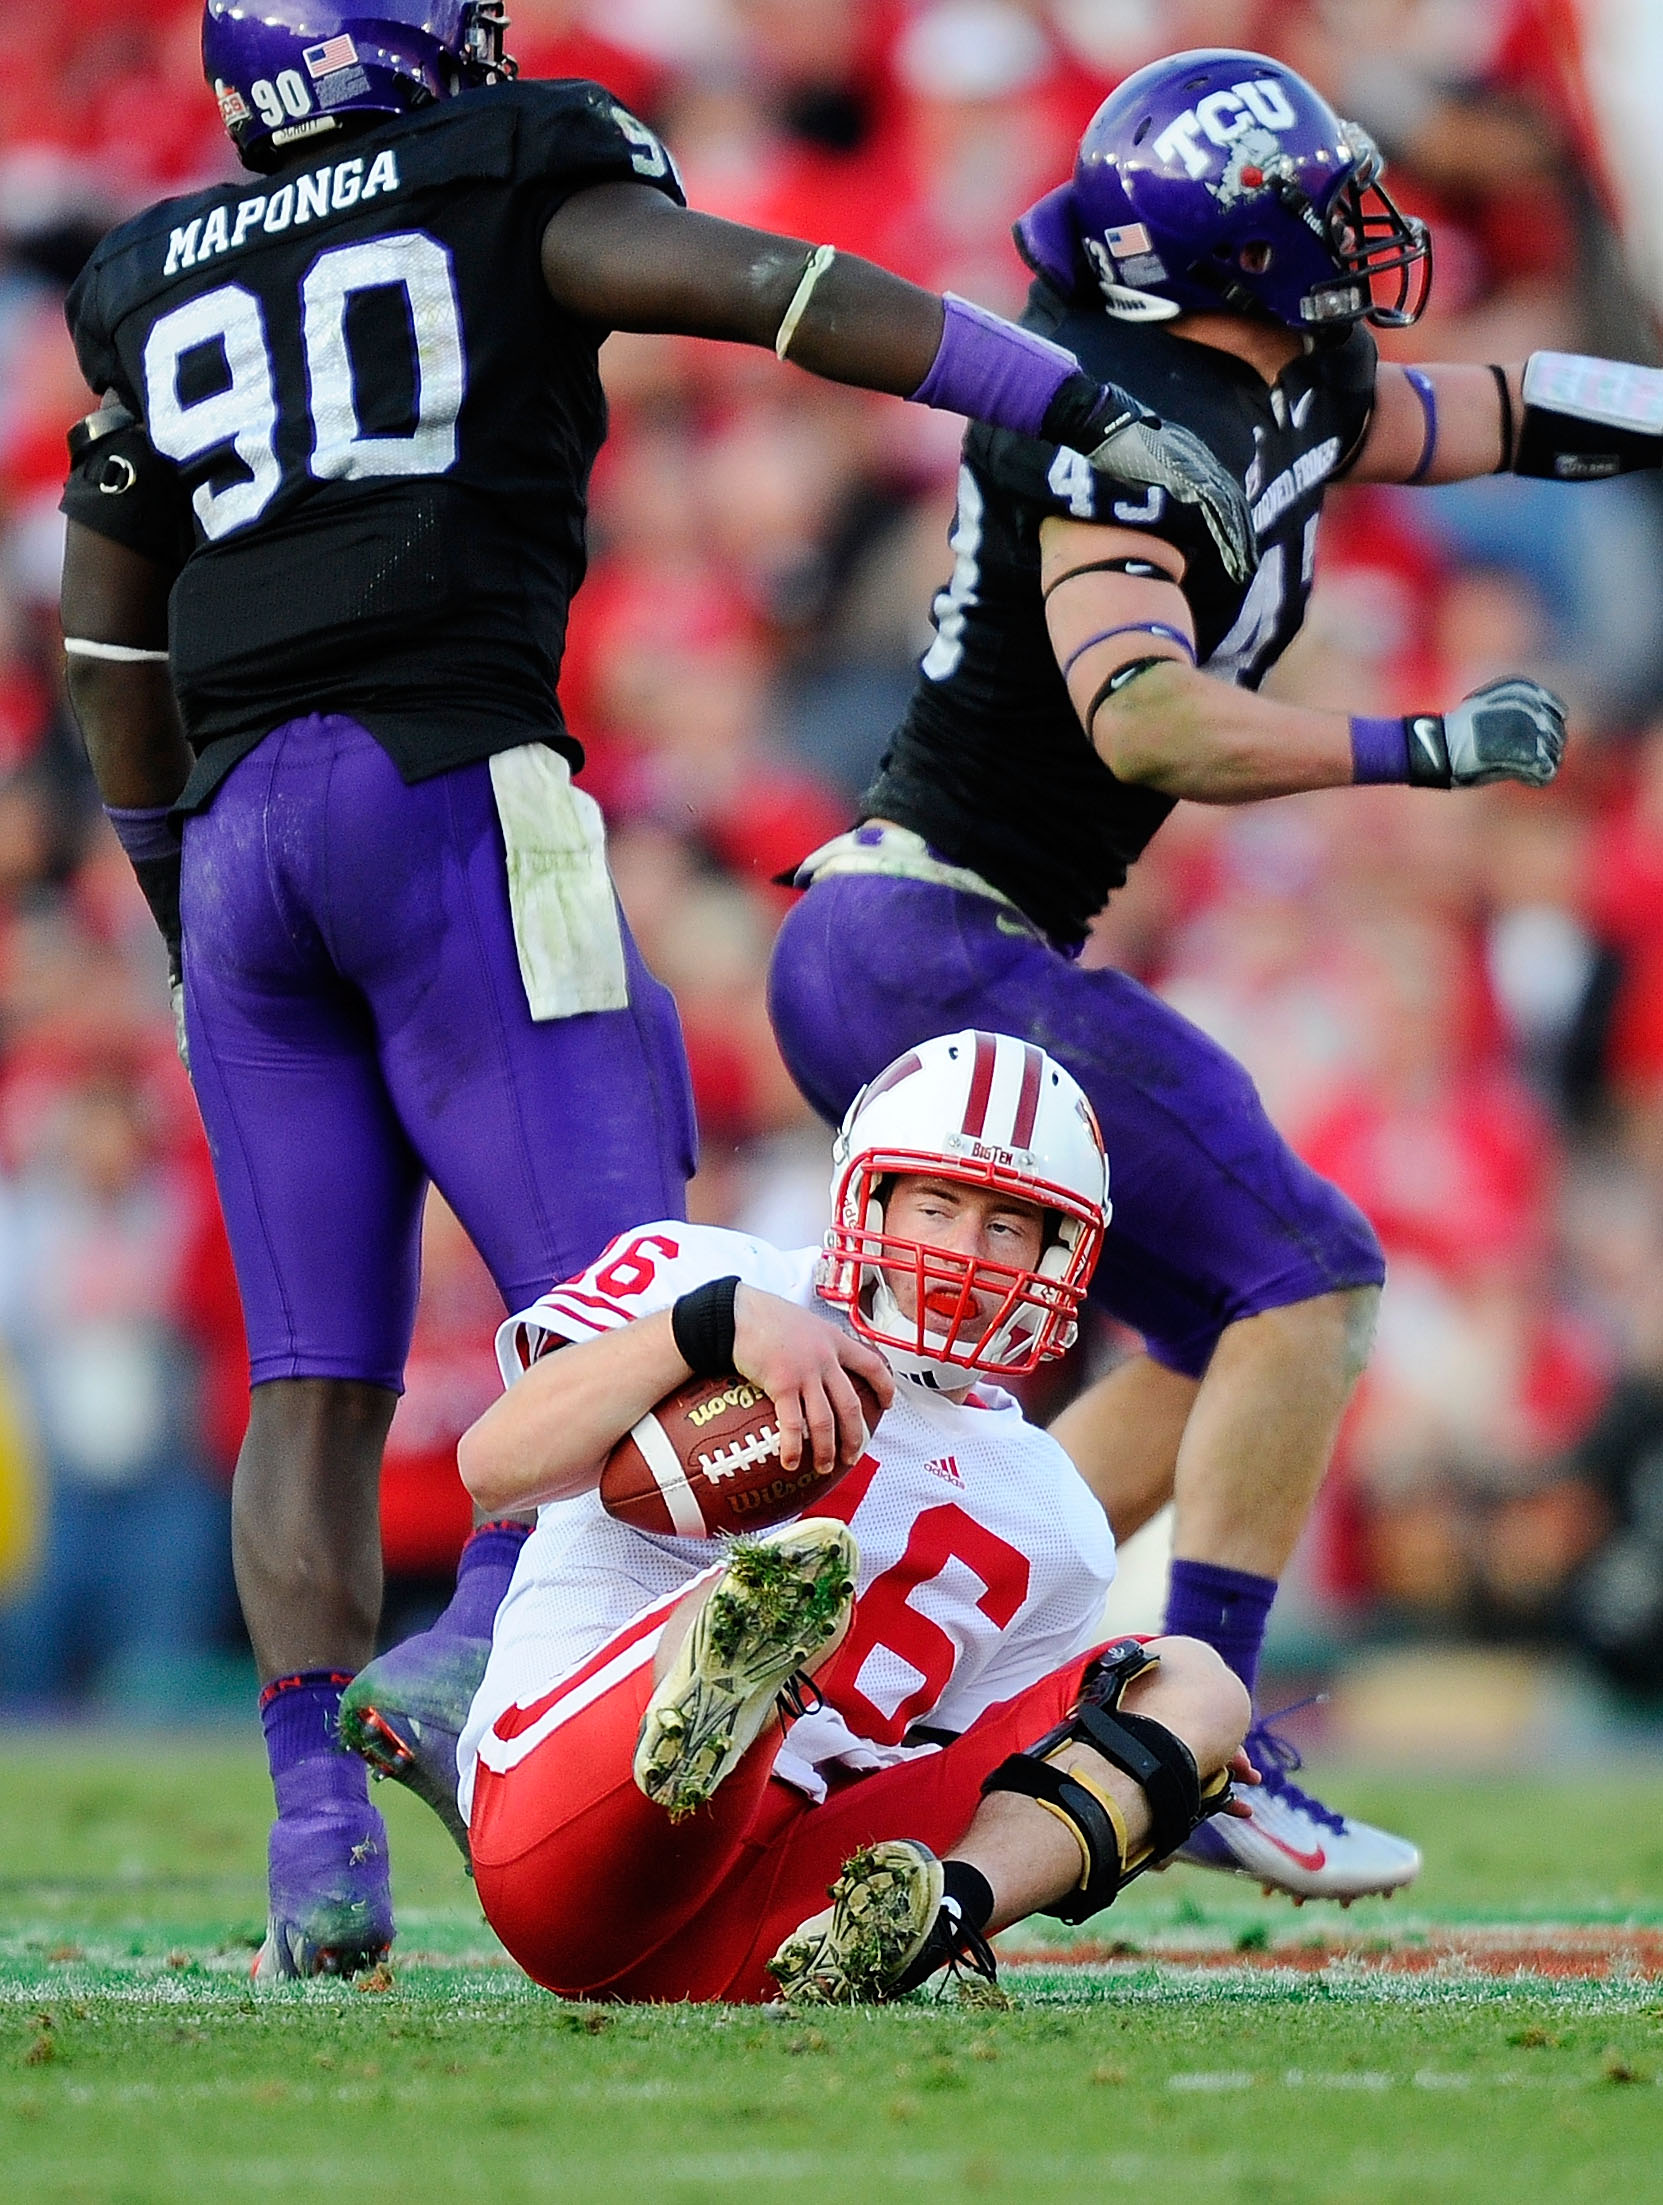 PASADENA, CA - JANUARY 01:  Quarterback Scott Tolzien #16 of the Wisconsin Badgers sits on the ground after being sacked by linebacker Tank Carder #43 of the TCU Horned Frogs during the 97th Rose Bowl game on January 1, 2011 in Pasadena, California.  (Pho